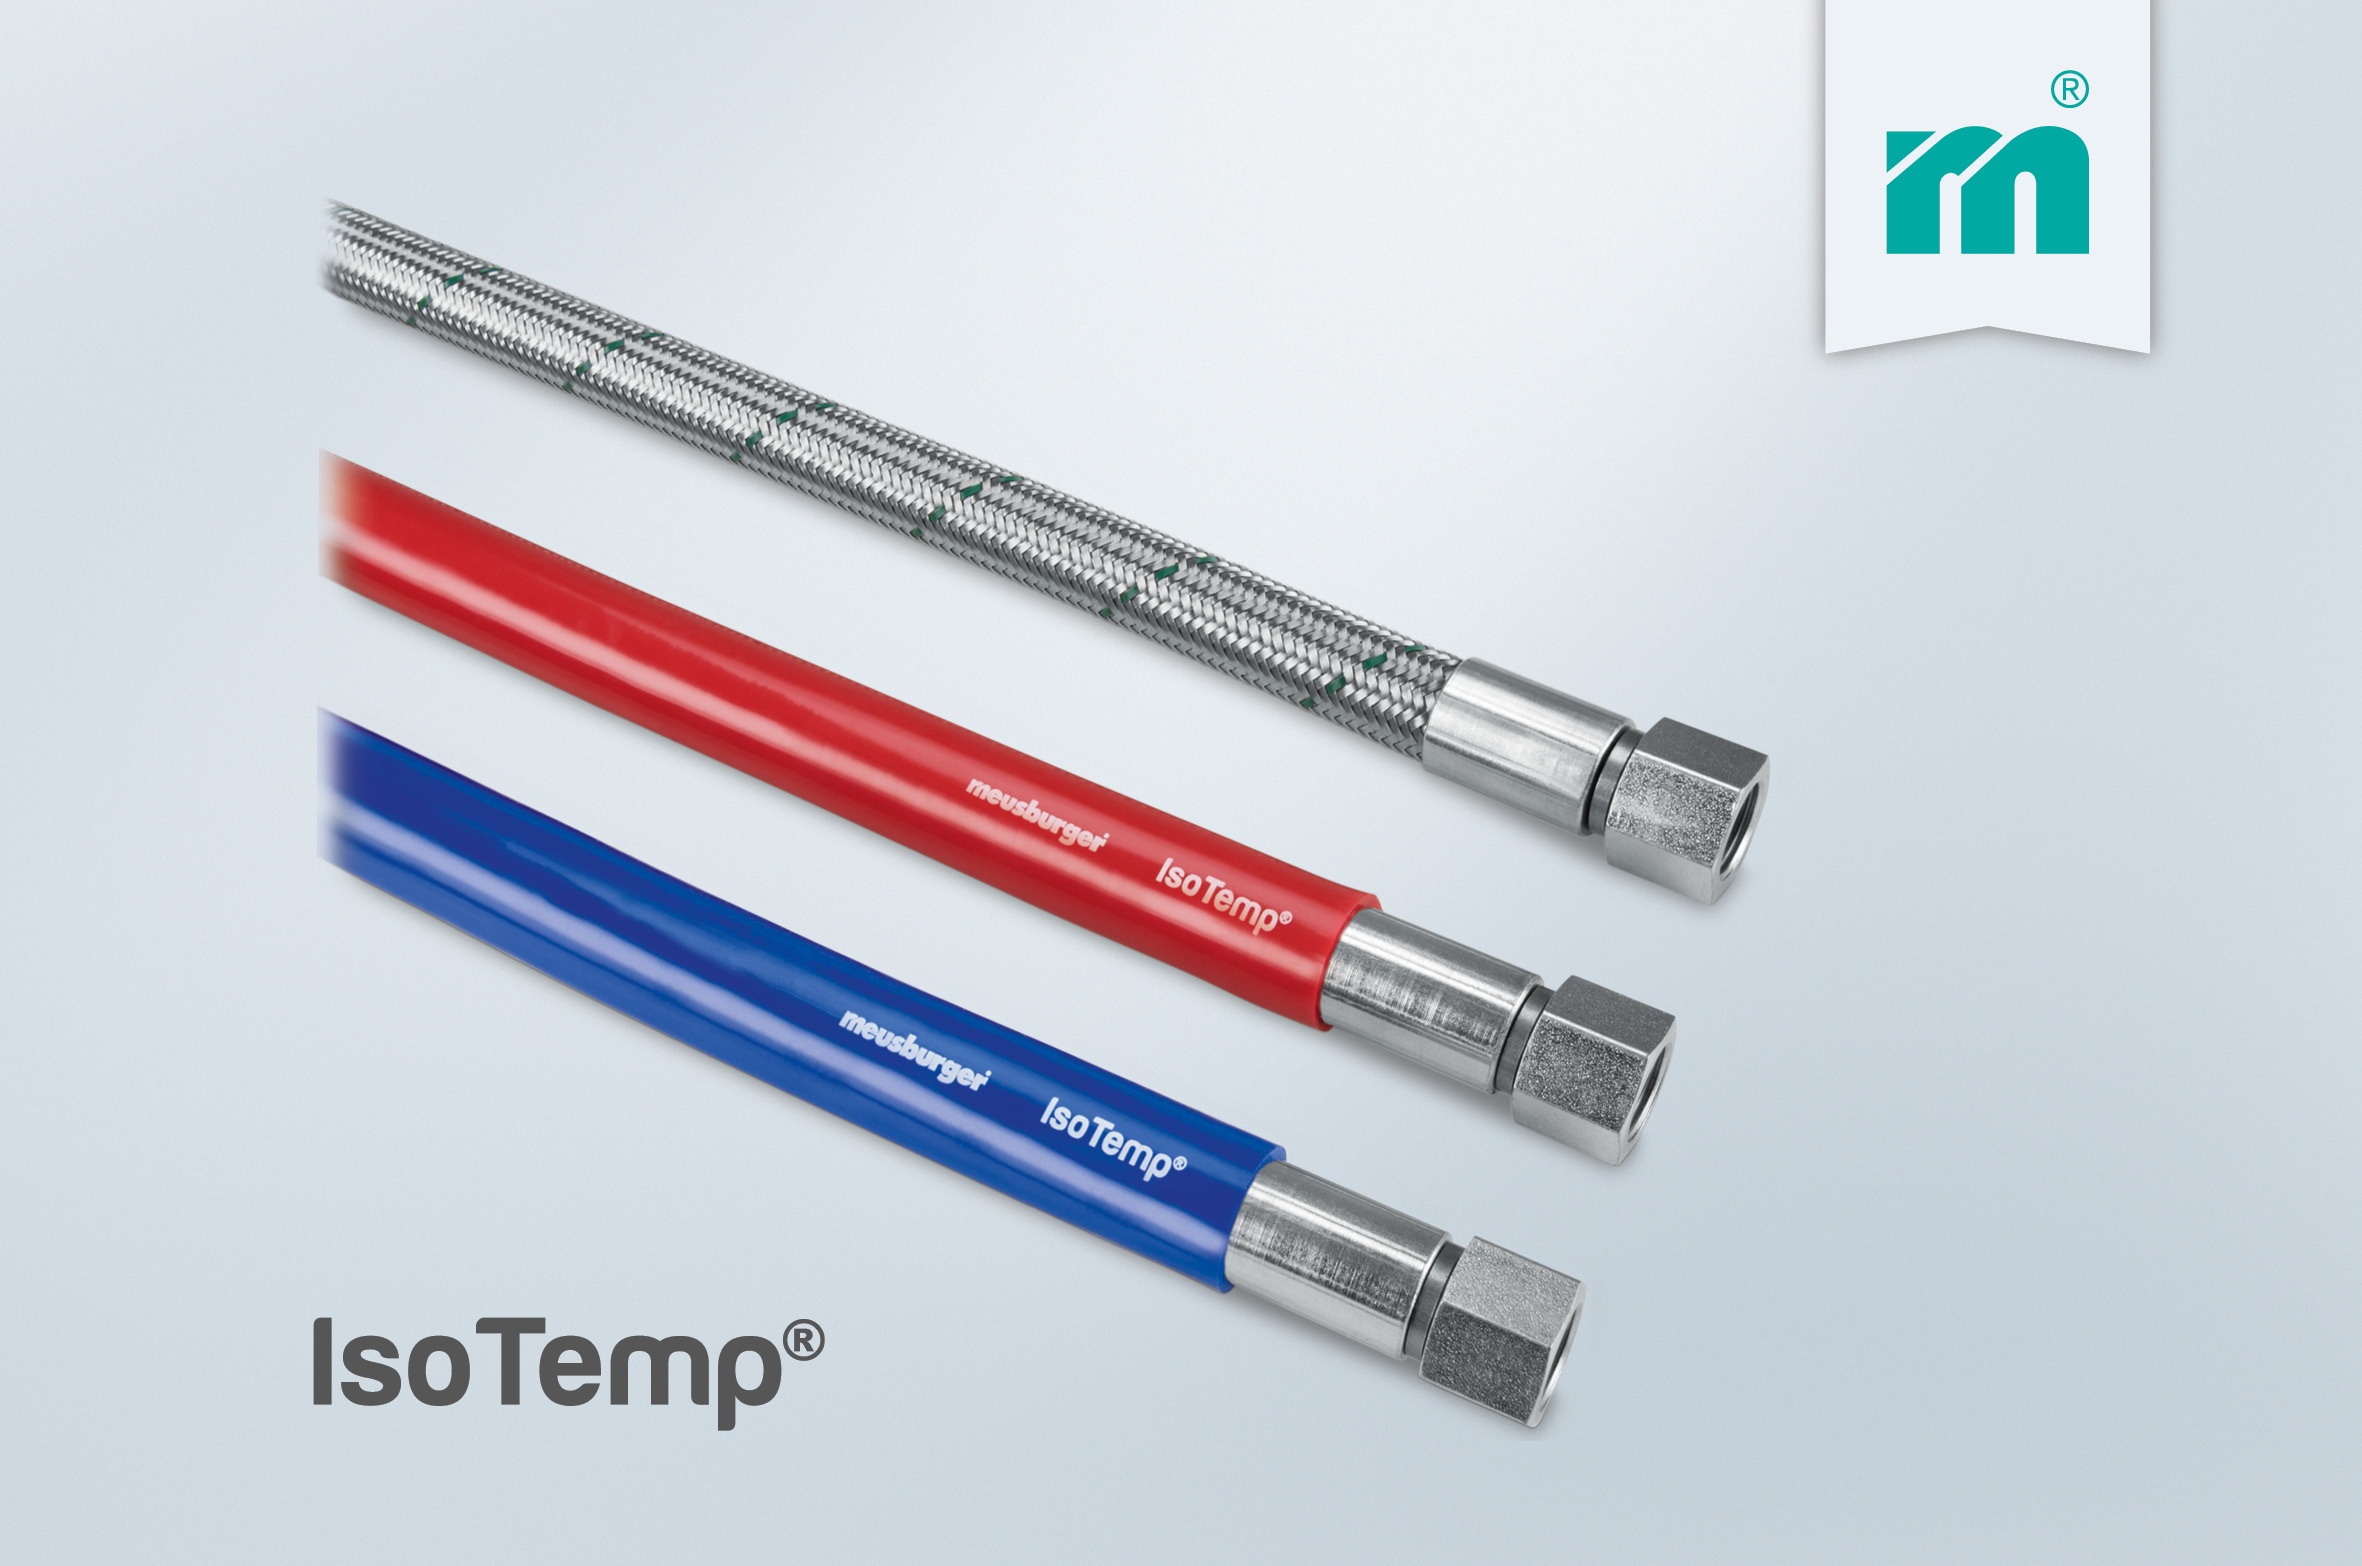 More safety in the operation thanks to the IsoTemp® high temperature hose